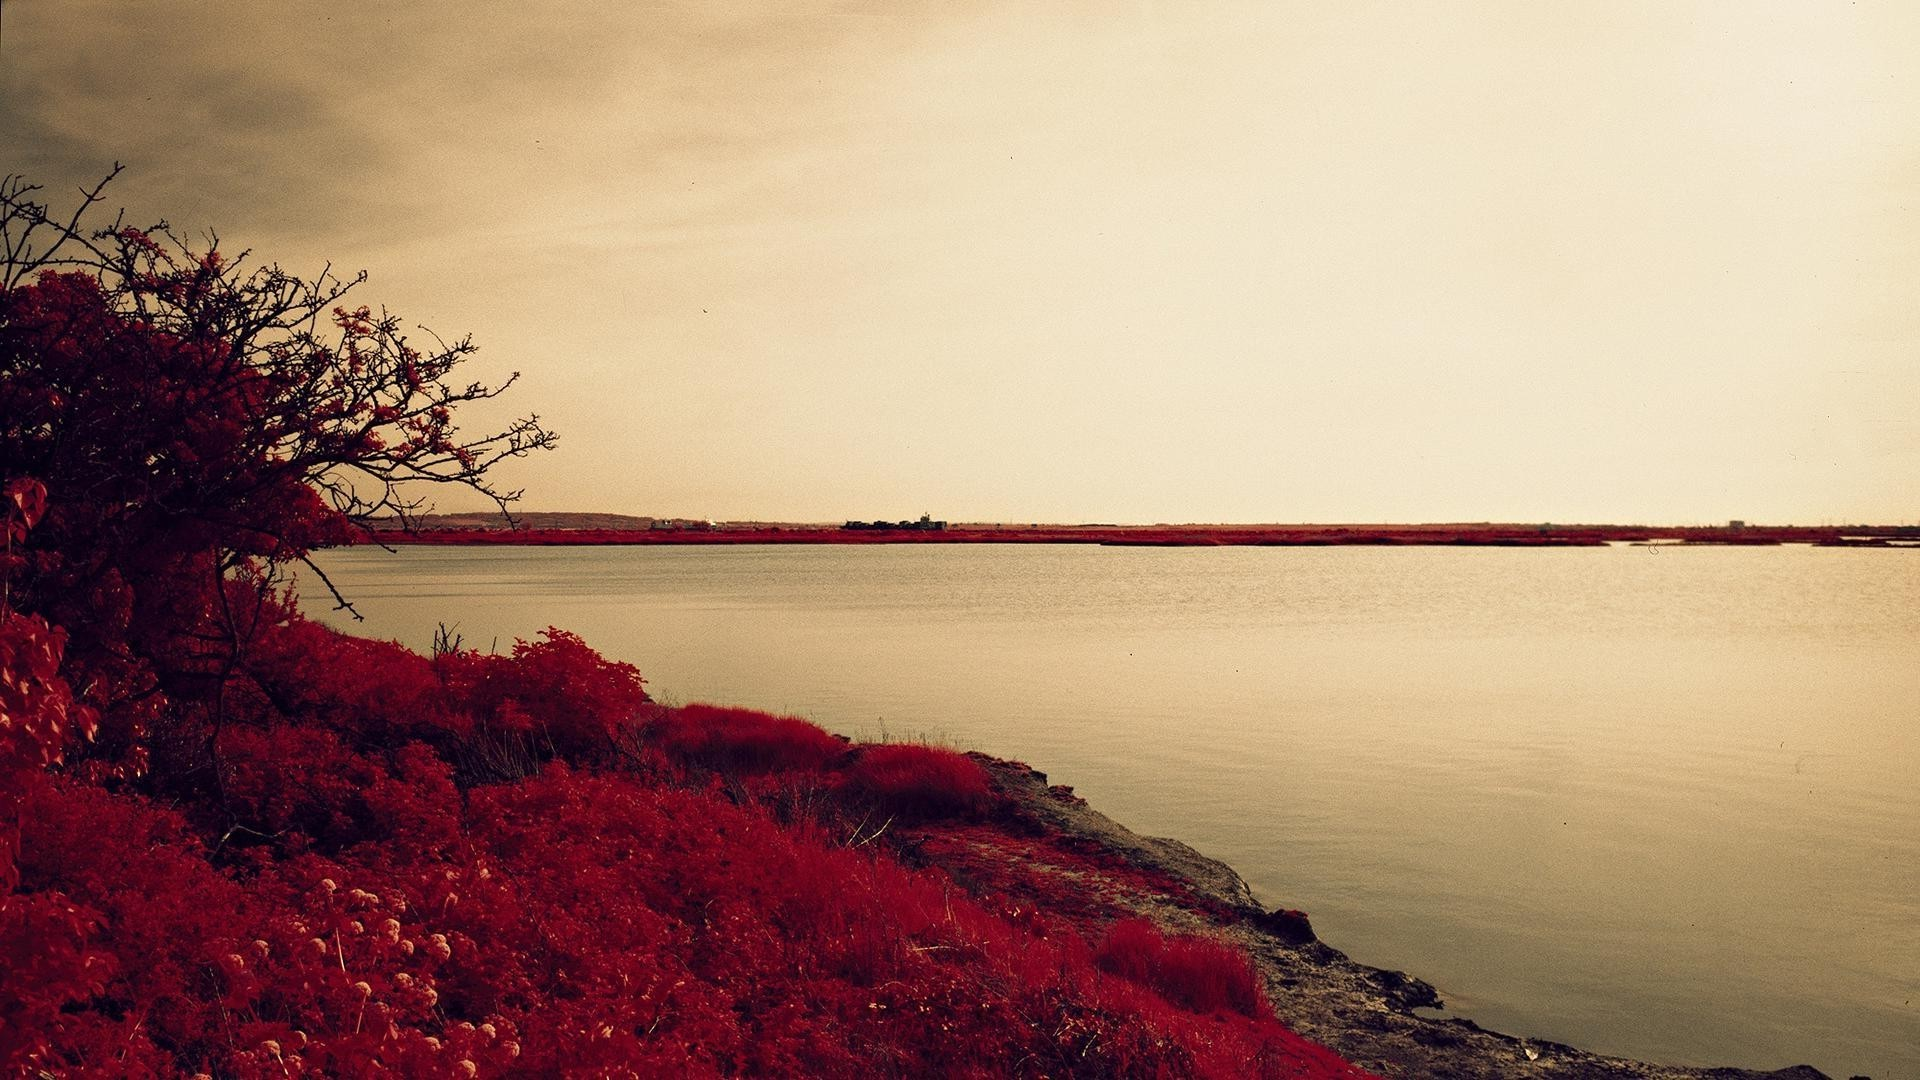 Red flowers, grass, bushes on the shore of lake